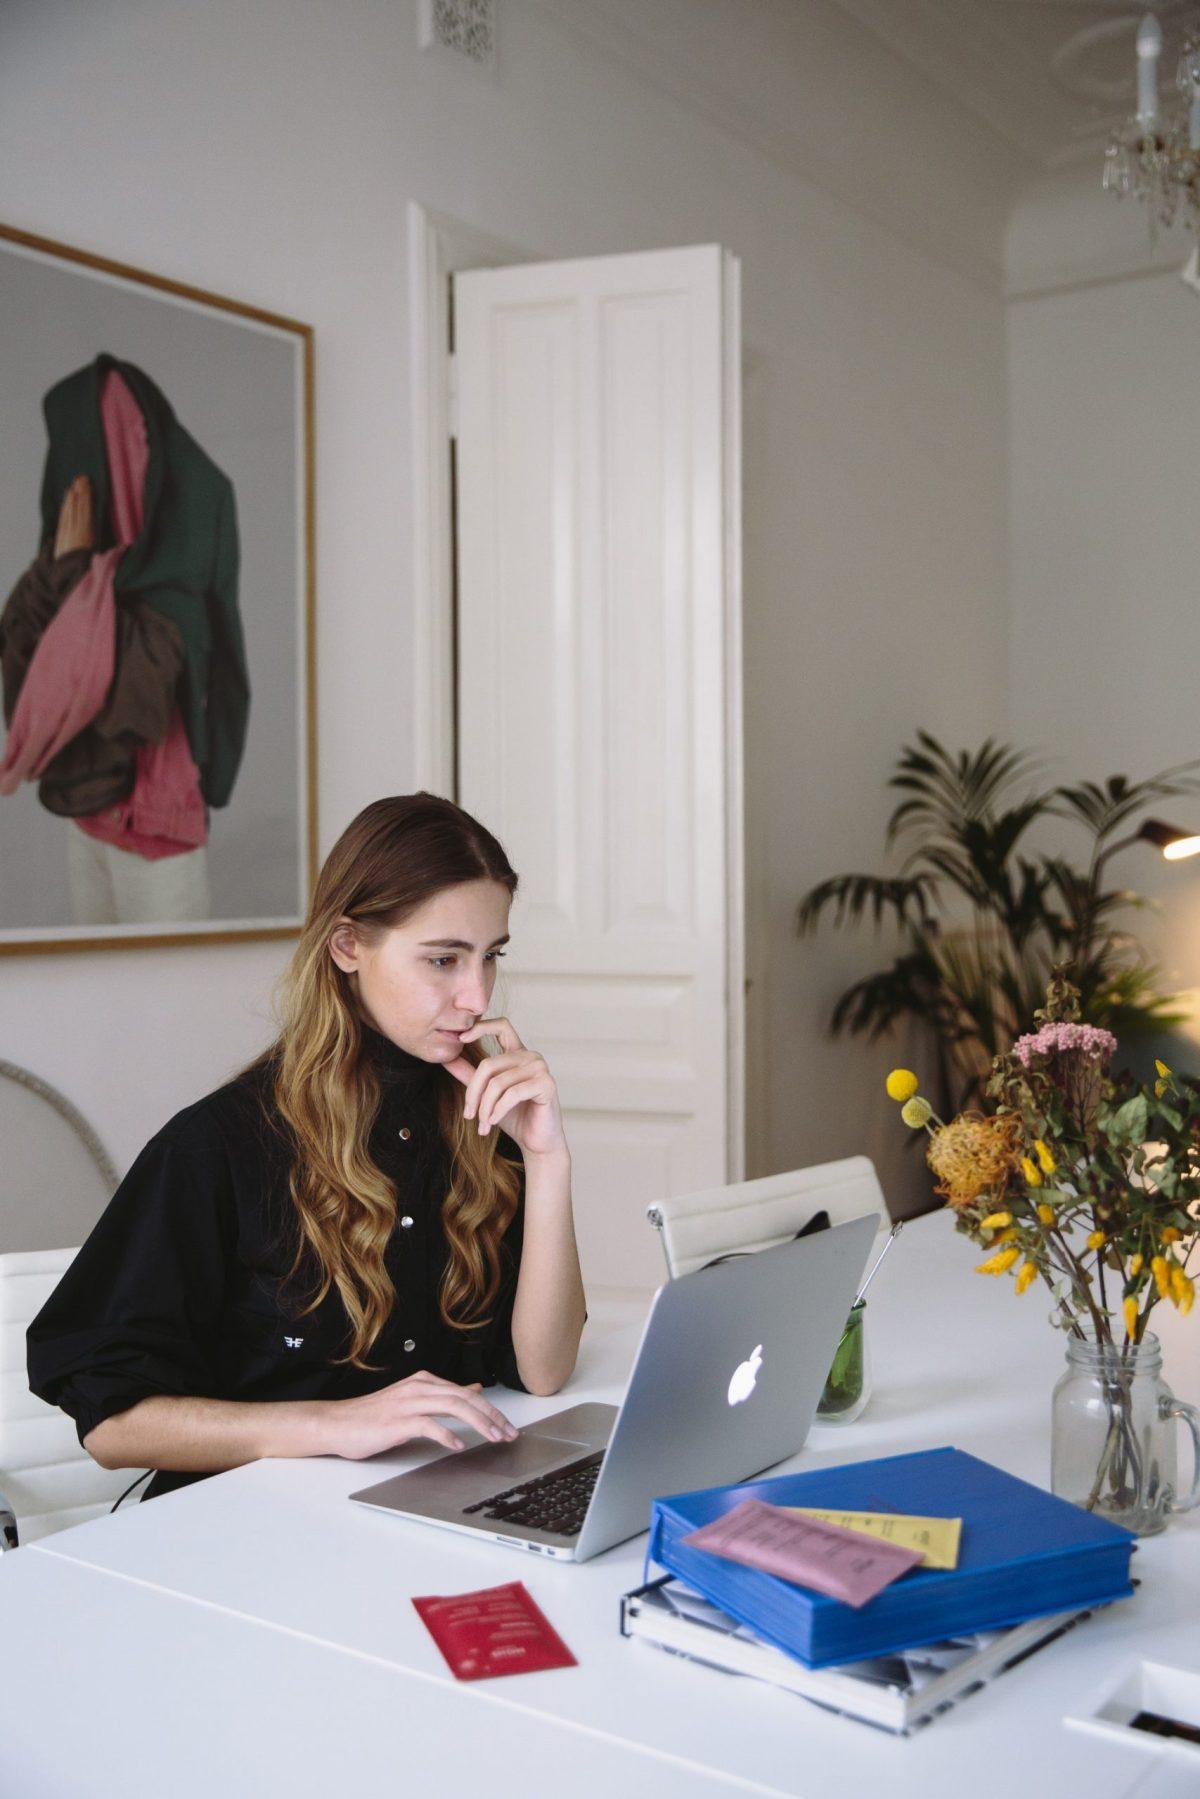 7 Easy Steps for Working Securely from Home